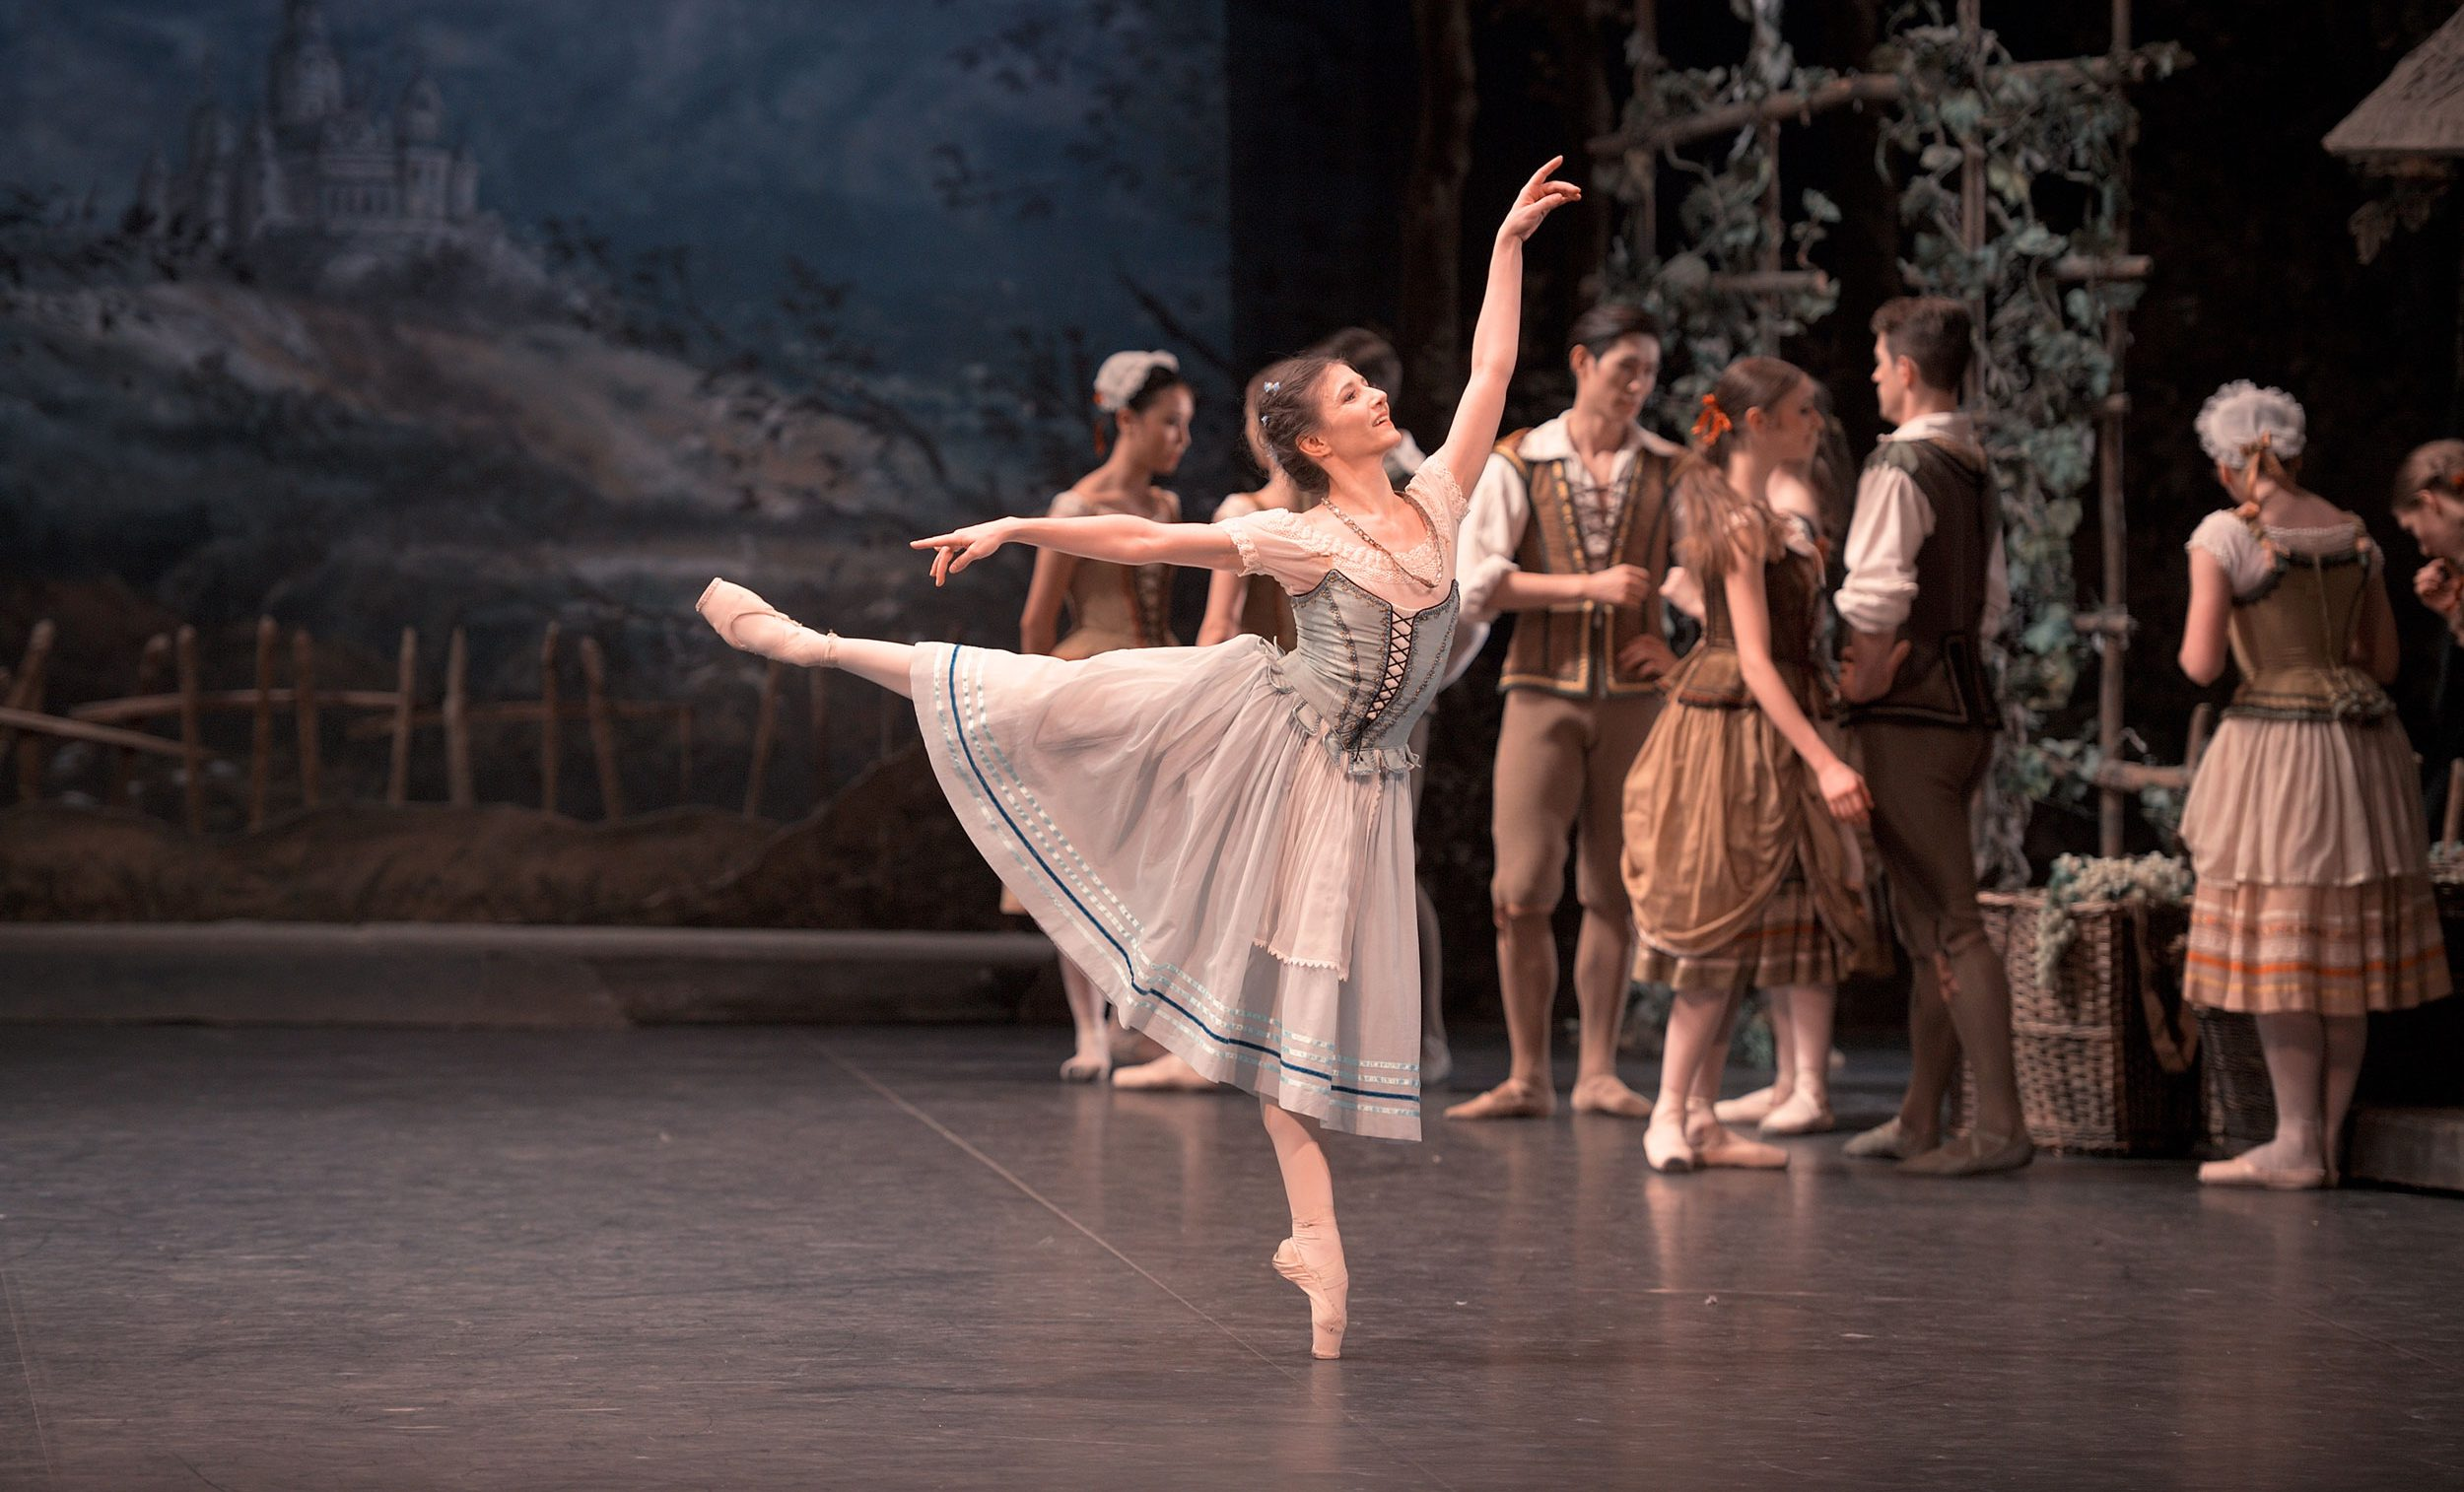 Alina-Cojocaru-in-Giselle-(c)-Laurent-Liotardo-for-web]